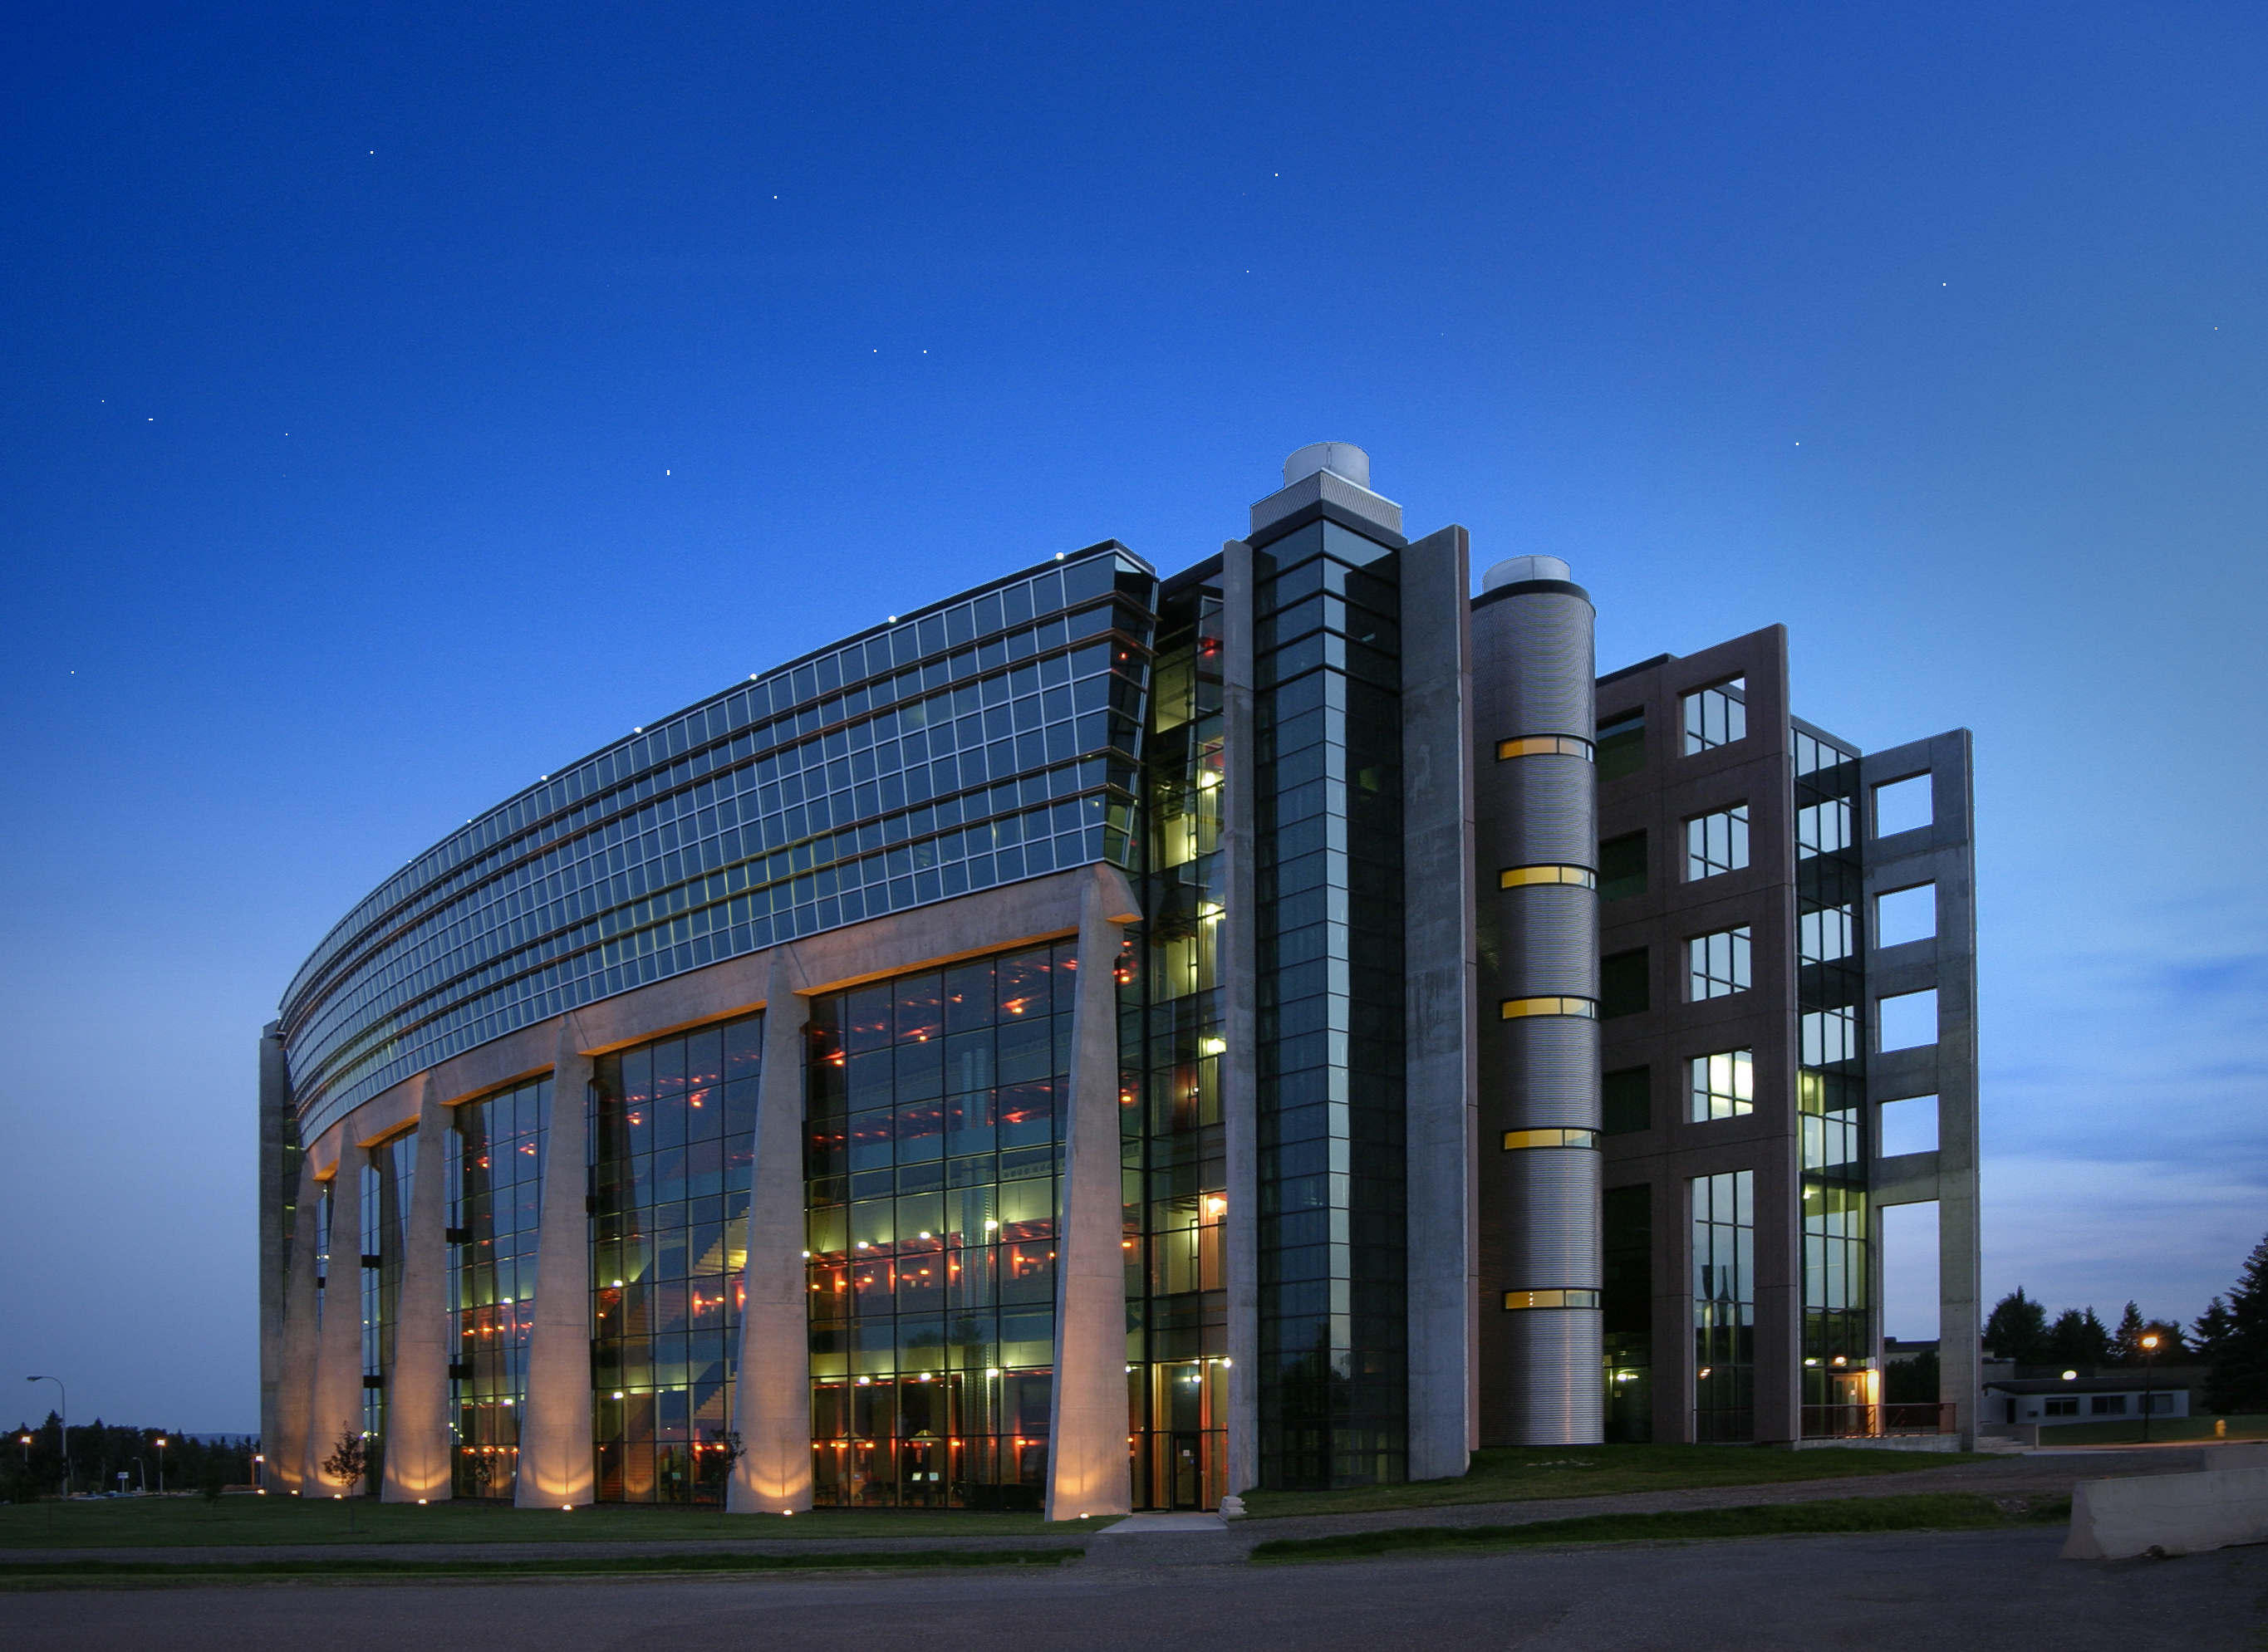 ATAC building at night with lights